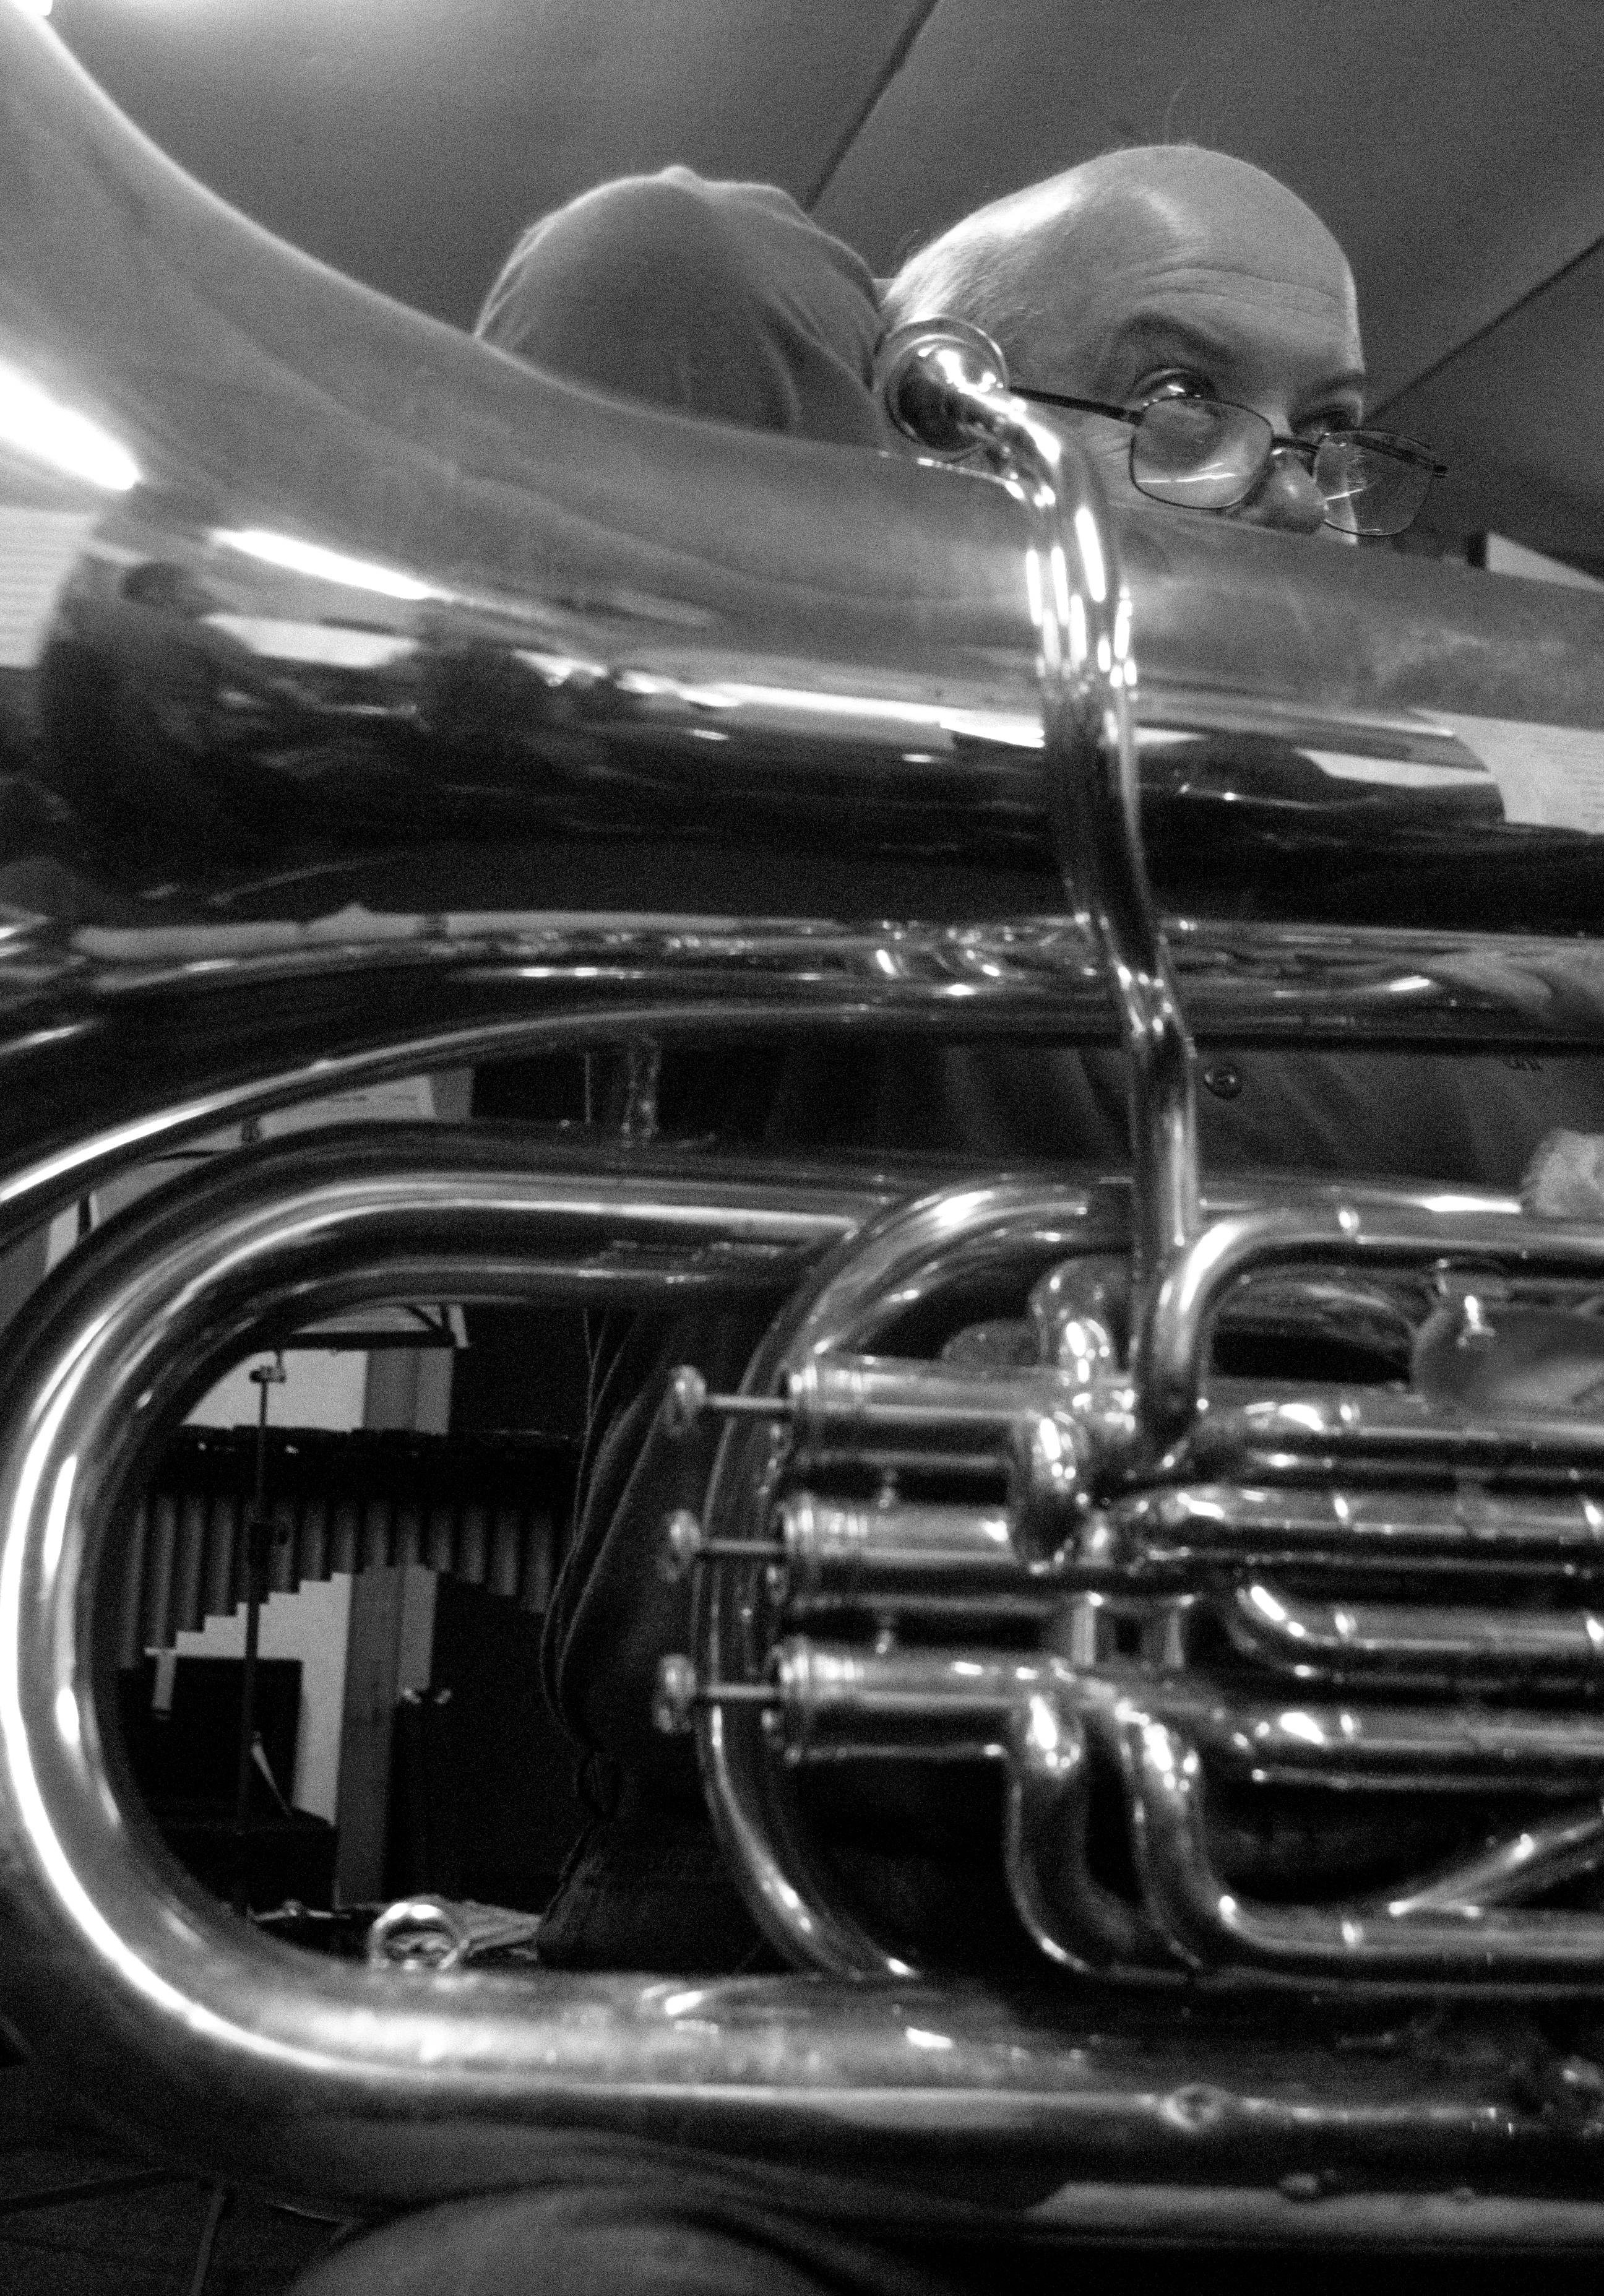 basses in band room nov 2012 - cheld.jpg